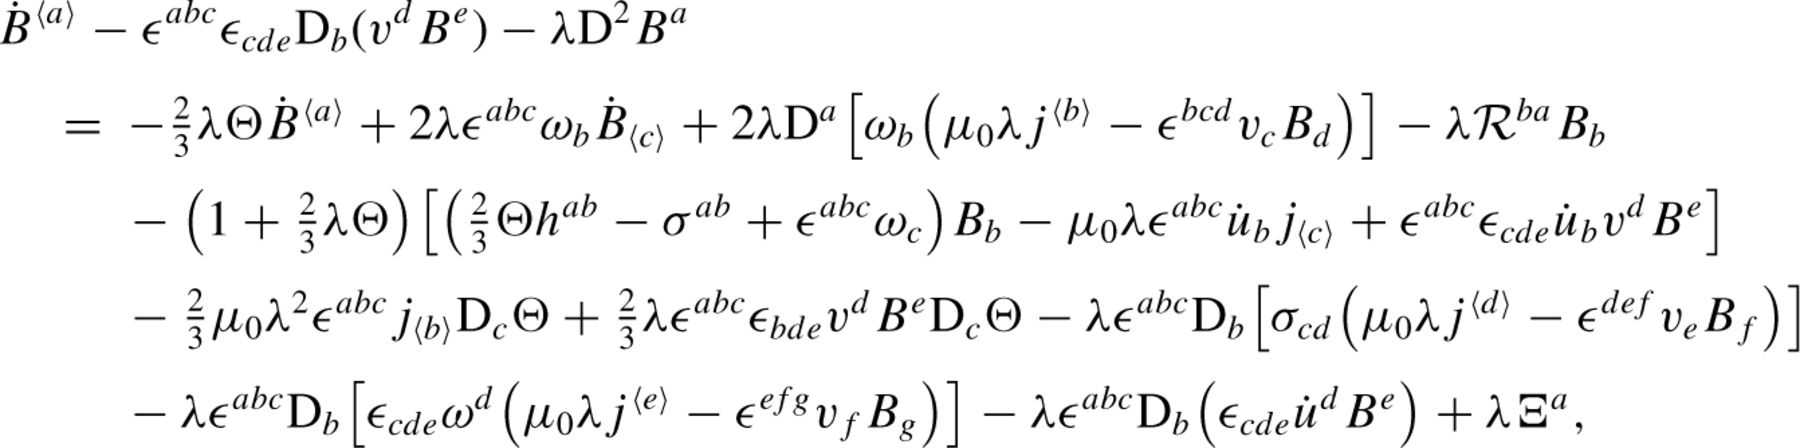 General Relativistic Magnetohydrodynamic Dynamo Equation Monthly Hifi Is Very Strong Nongeneral Av Amplifier Circuit Can Be Compared Formula